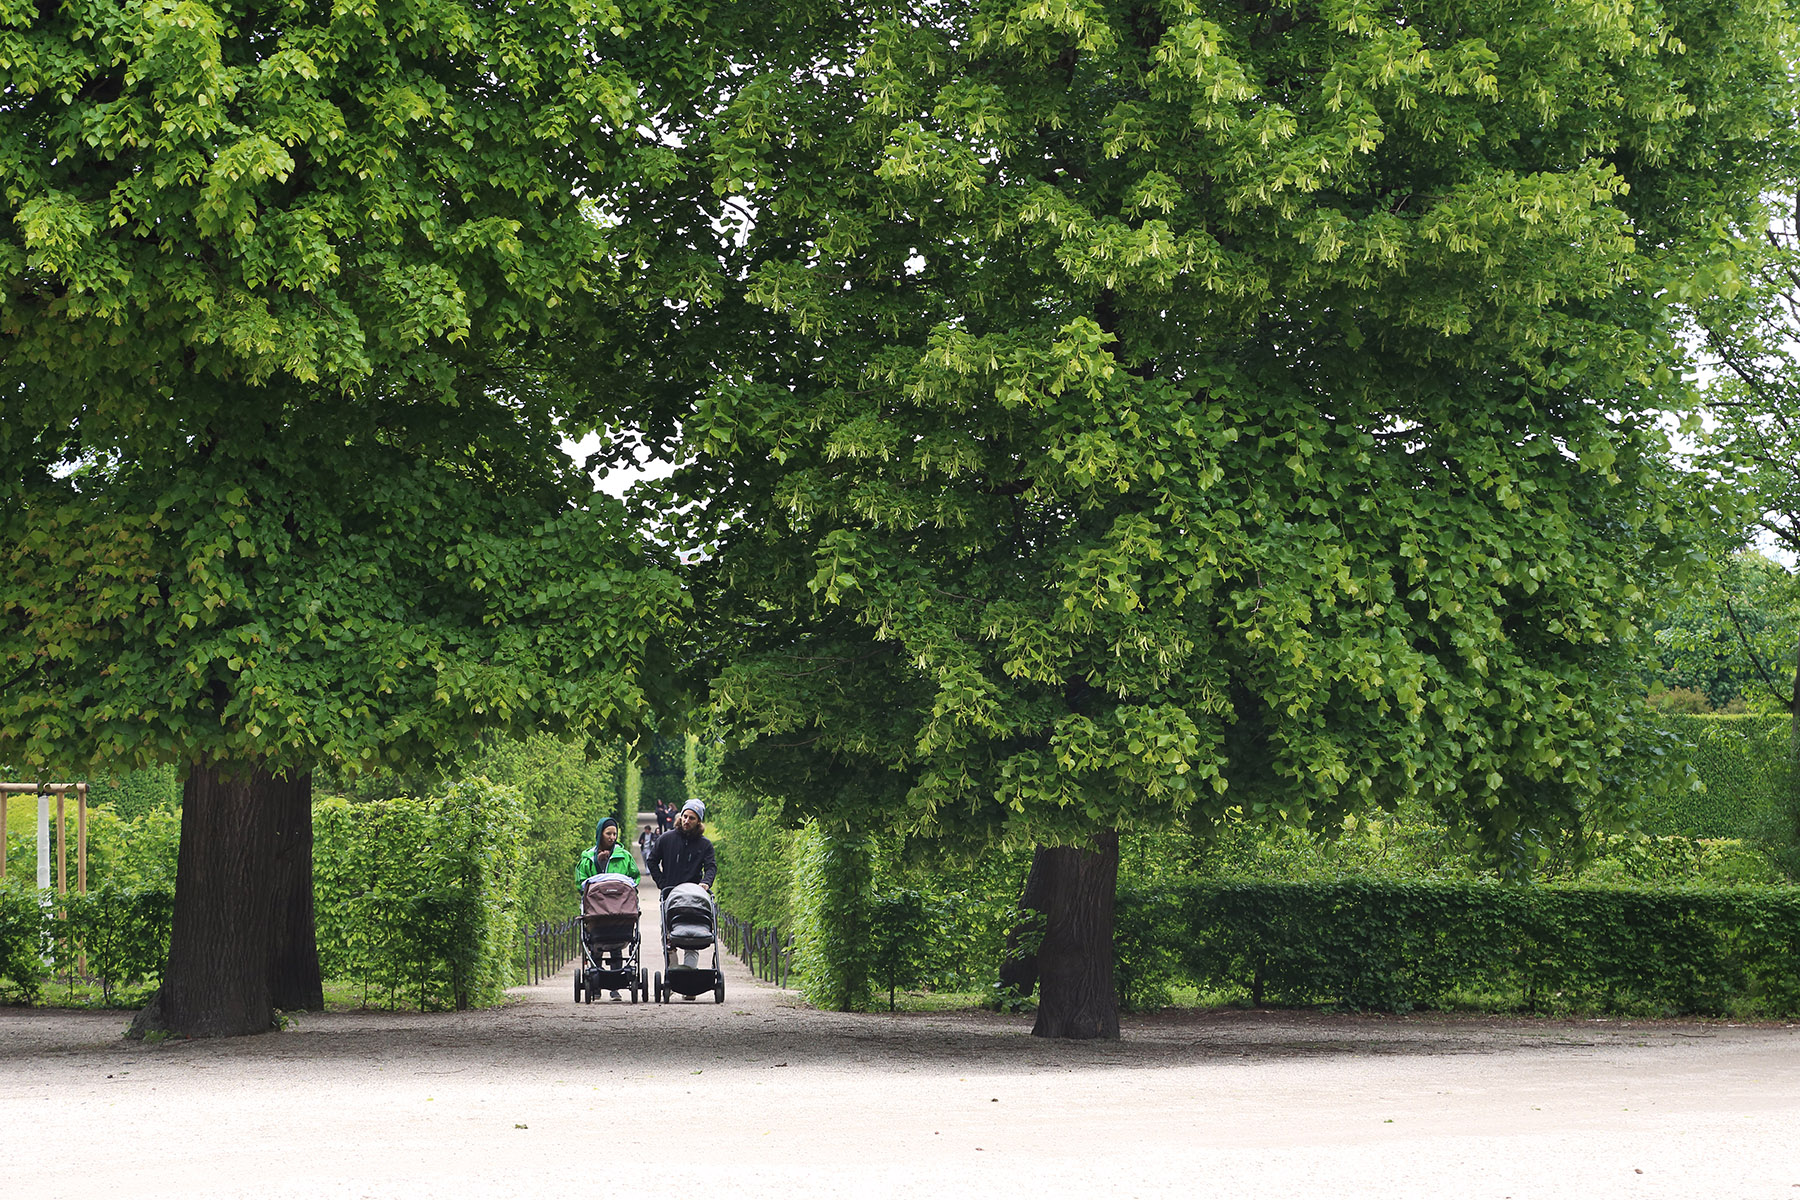 Parents with strollers in a Vienna park